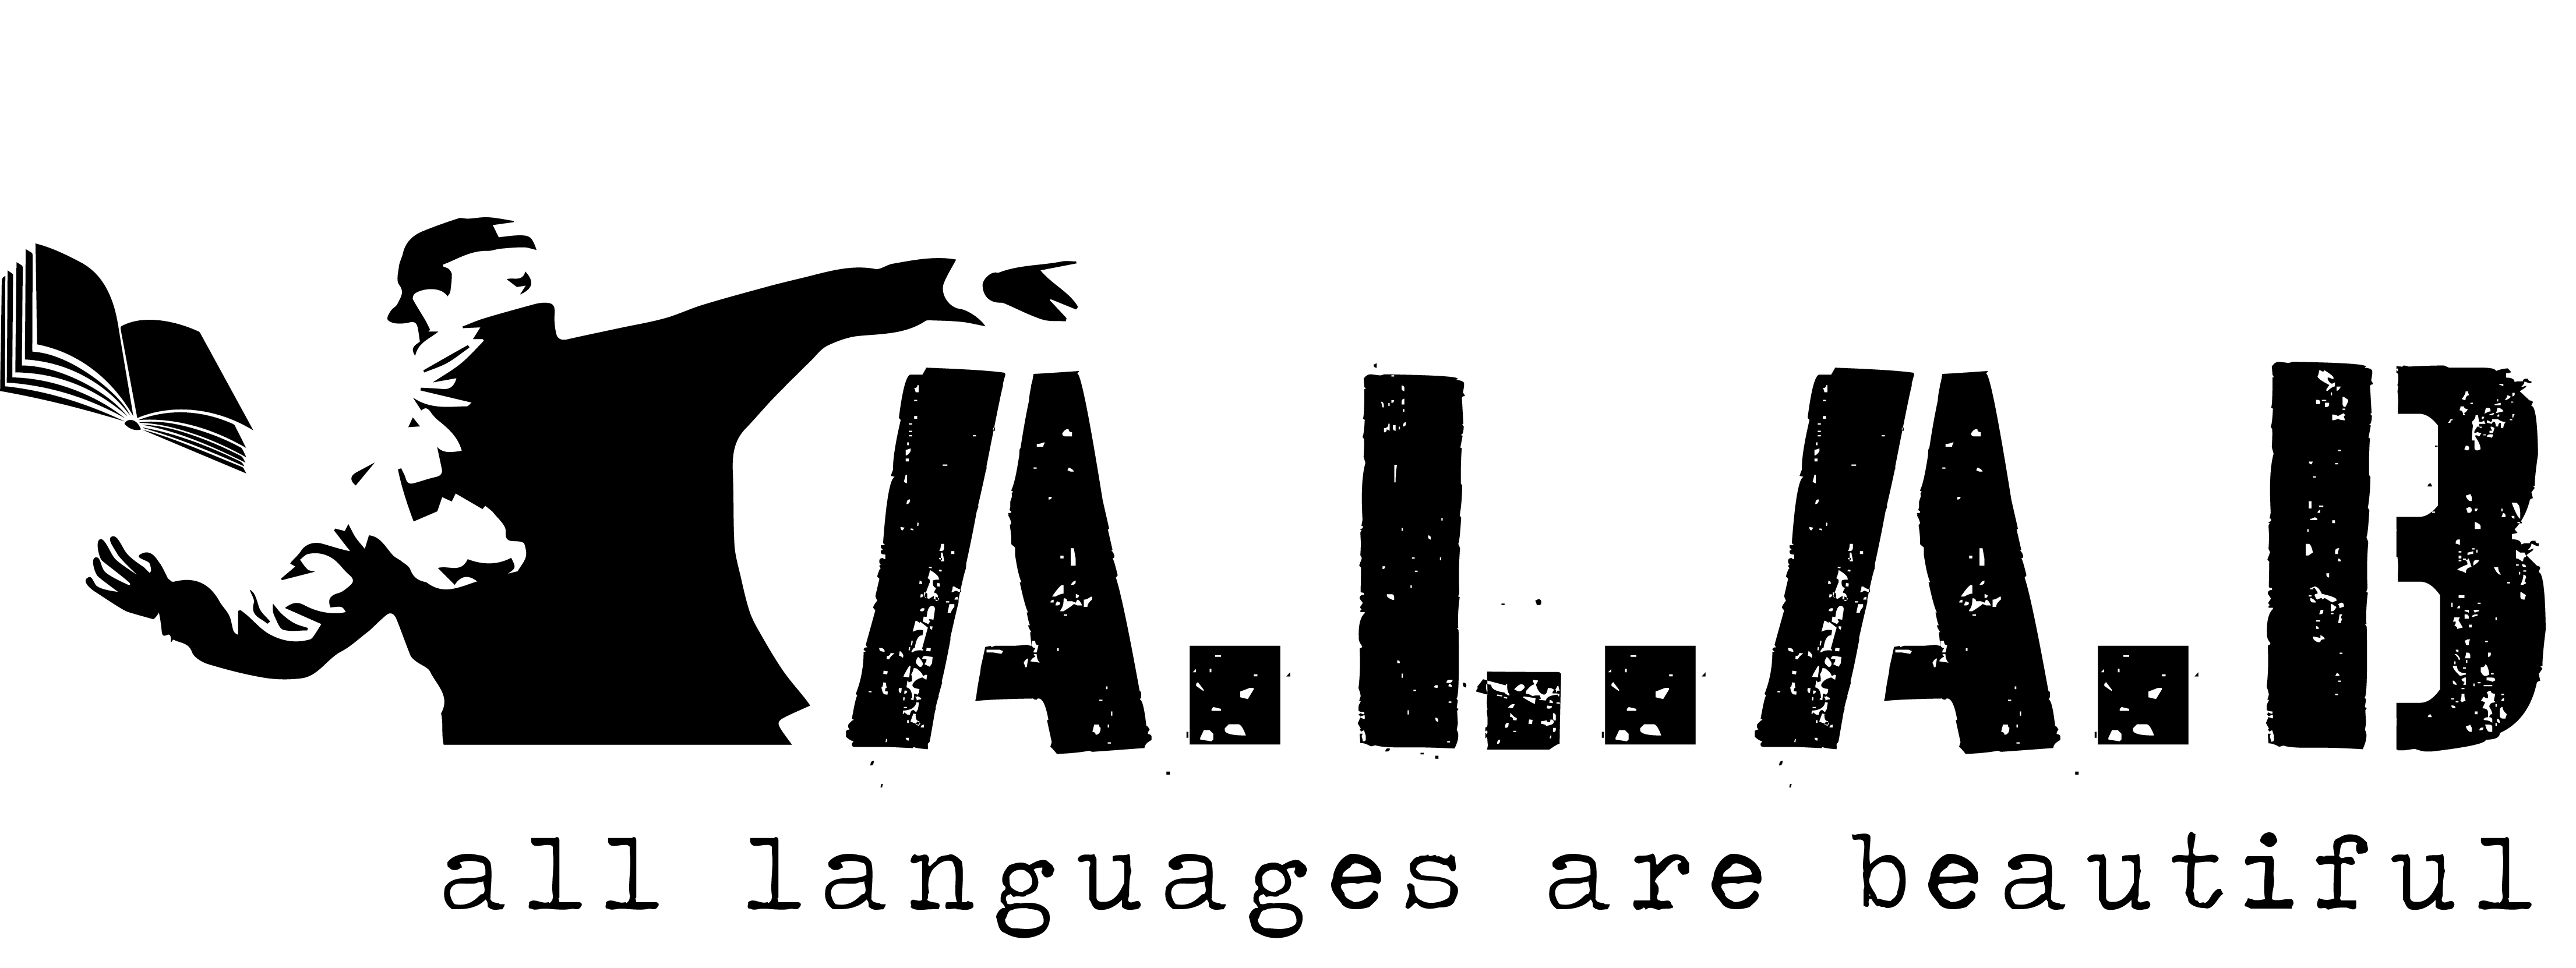 A.L.A.B. - All languages are beautiful